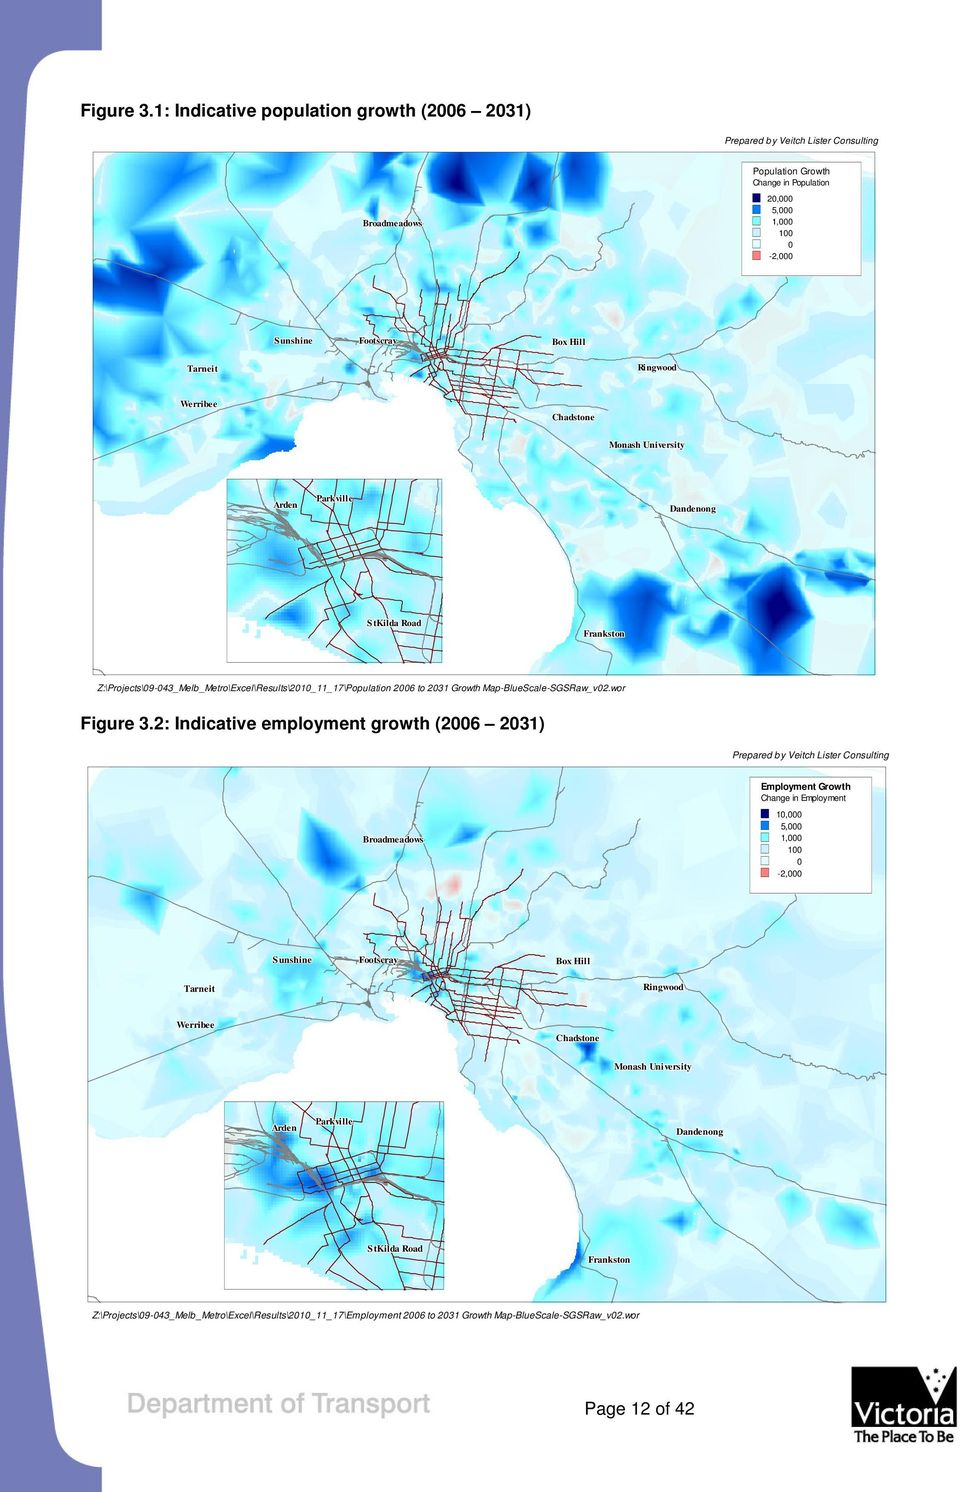 Ringwood Werribee Chadstone Monash University Arden Parkville Dandenong StKilda Road Frankston Z:\Projects\09-043_Melb_Metro\Excel\Results\2010_11_17\Population 2006 to 2031 Growth